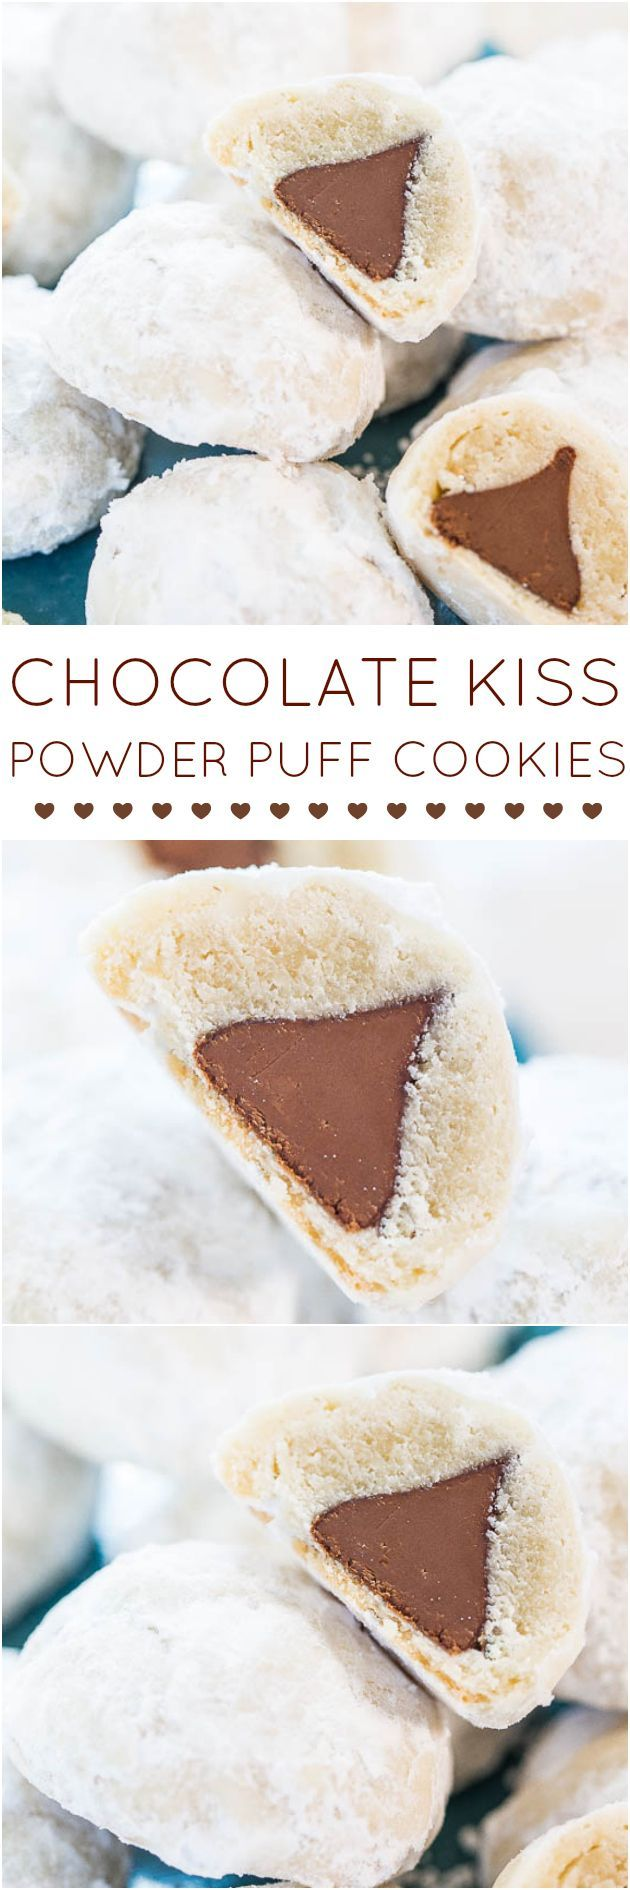 Chocolate Kiss Powder Puff Cookies - Easiest cookies ever with only 3…